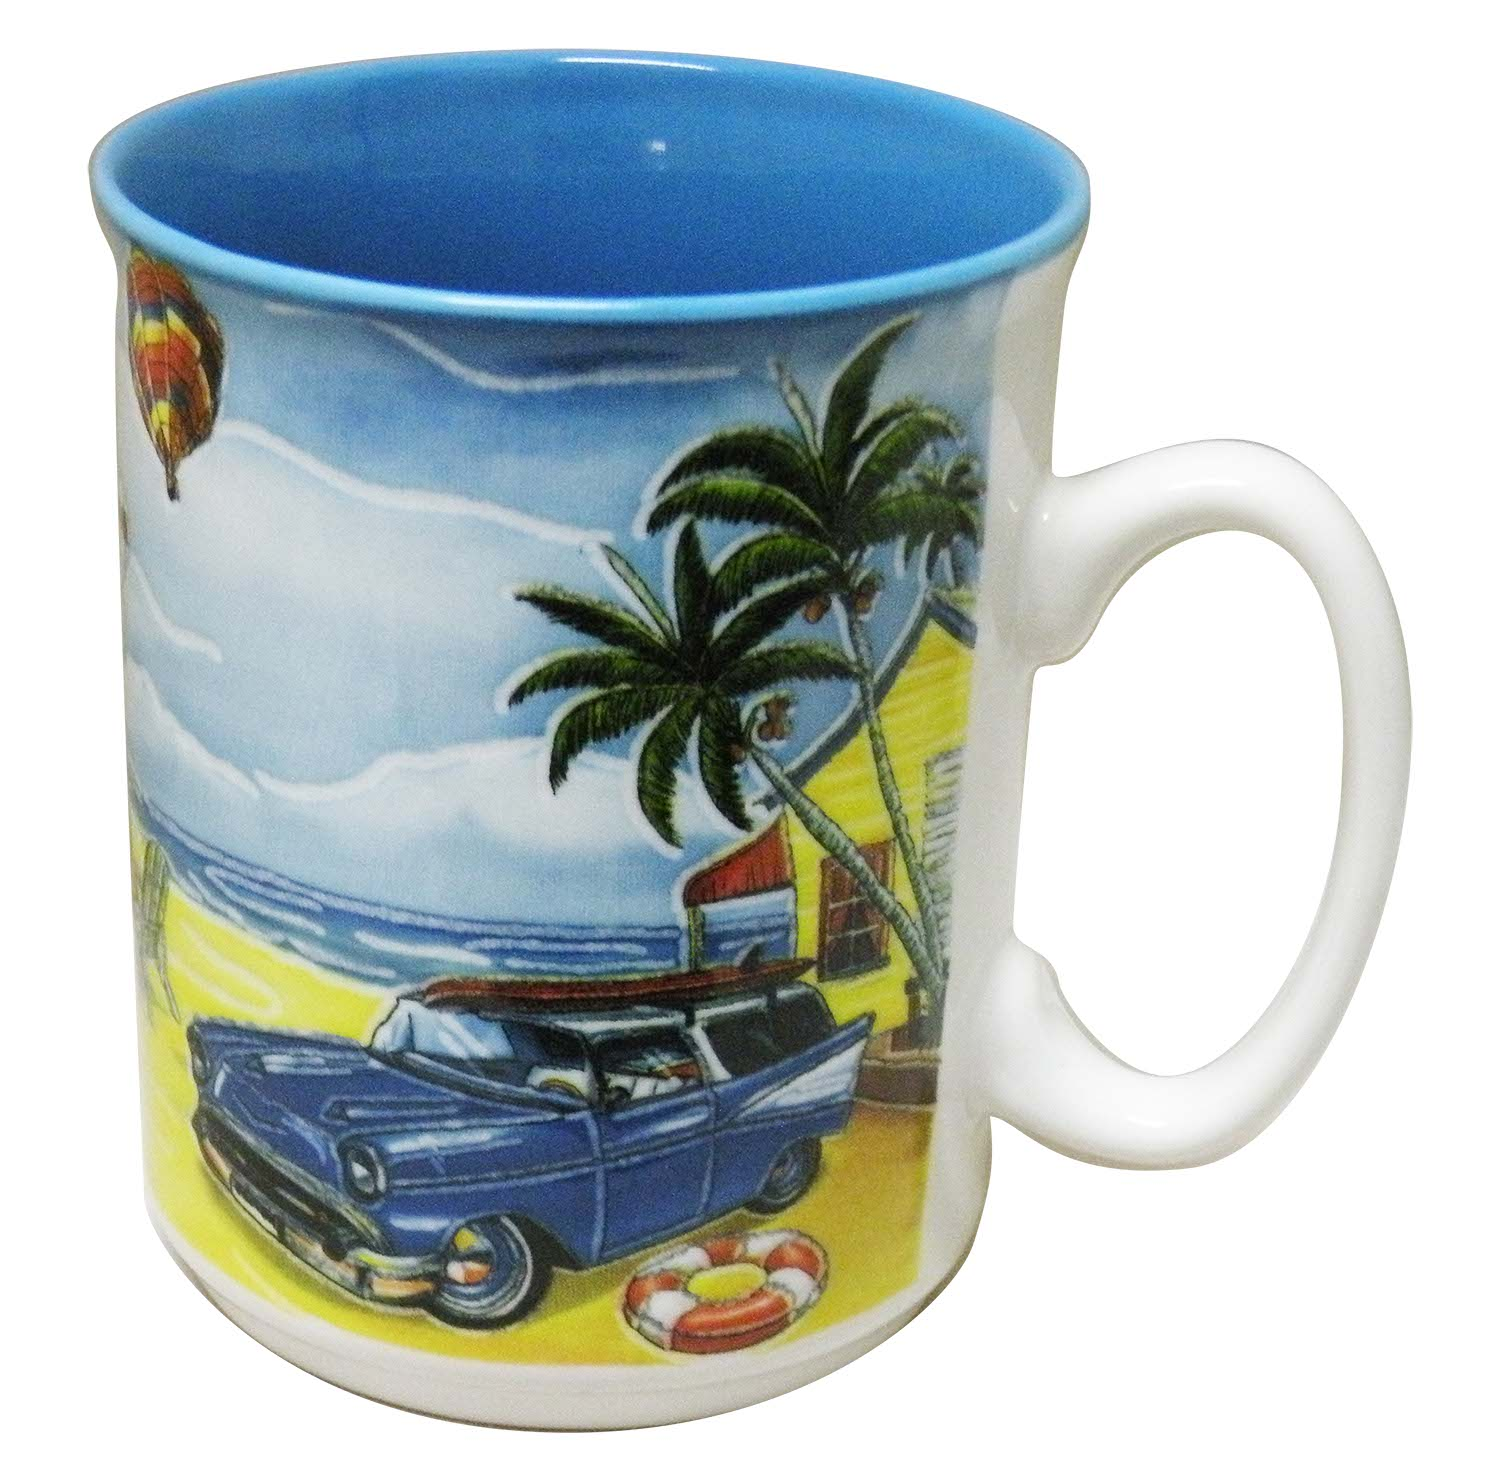 MUG CERAMIC/BLUE-CAR/BALLOON * UOM: PC * Minimum Order:4